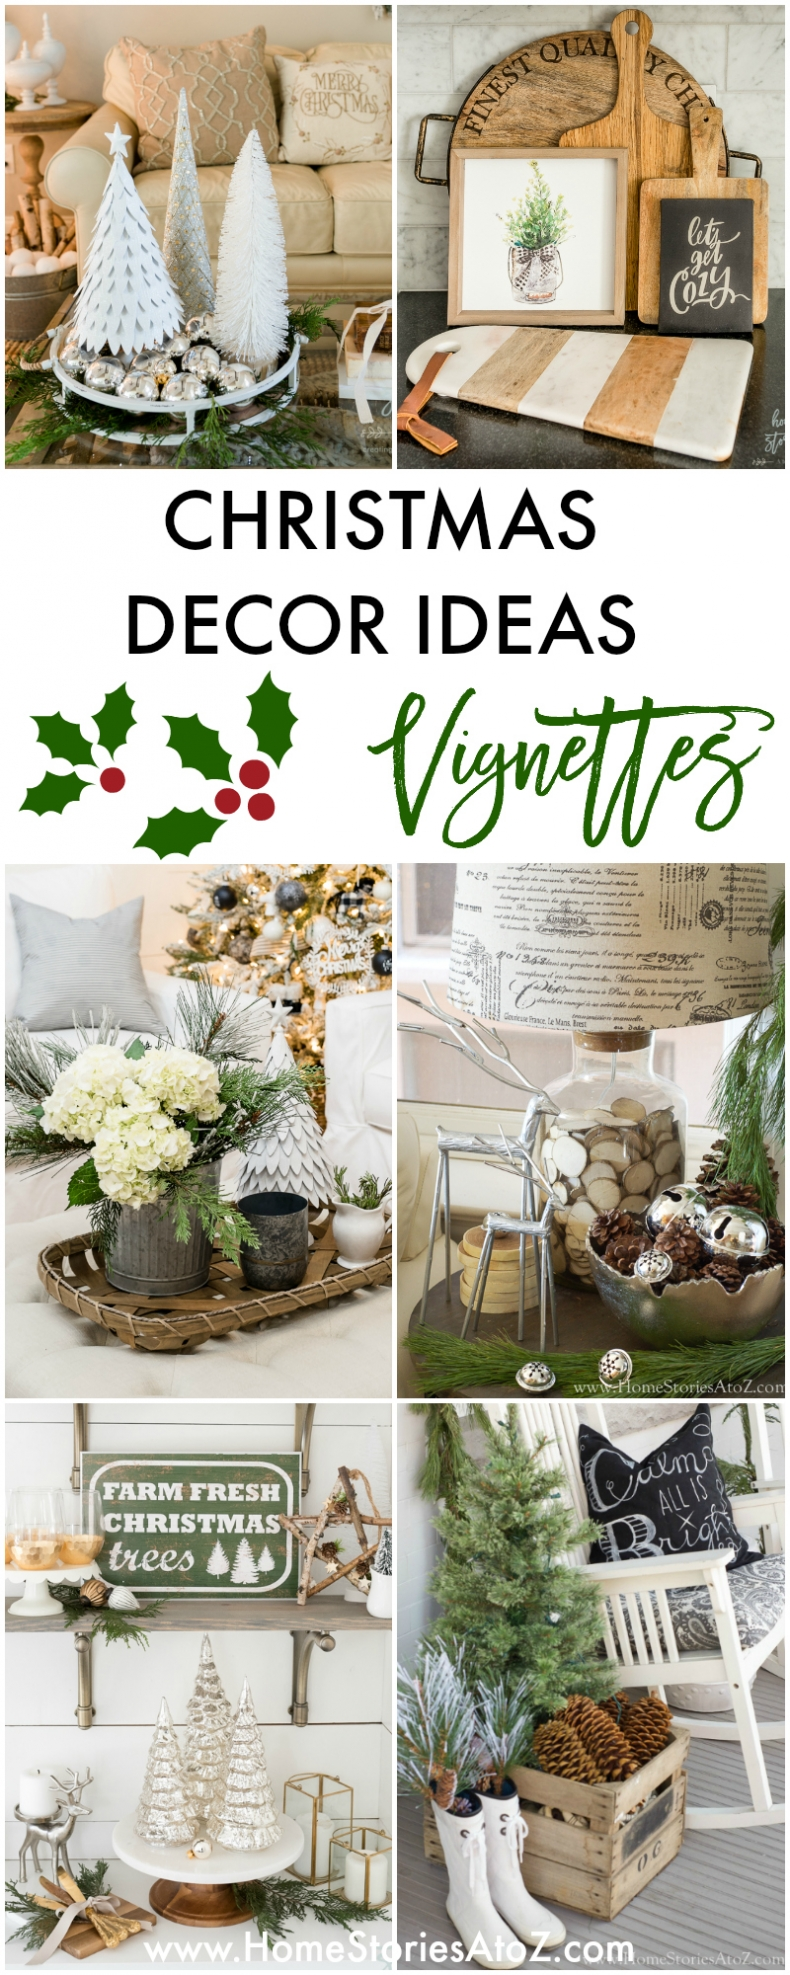 Christmas Vignette Ideas